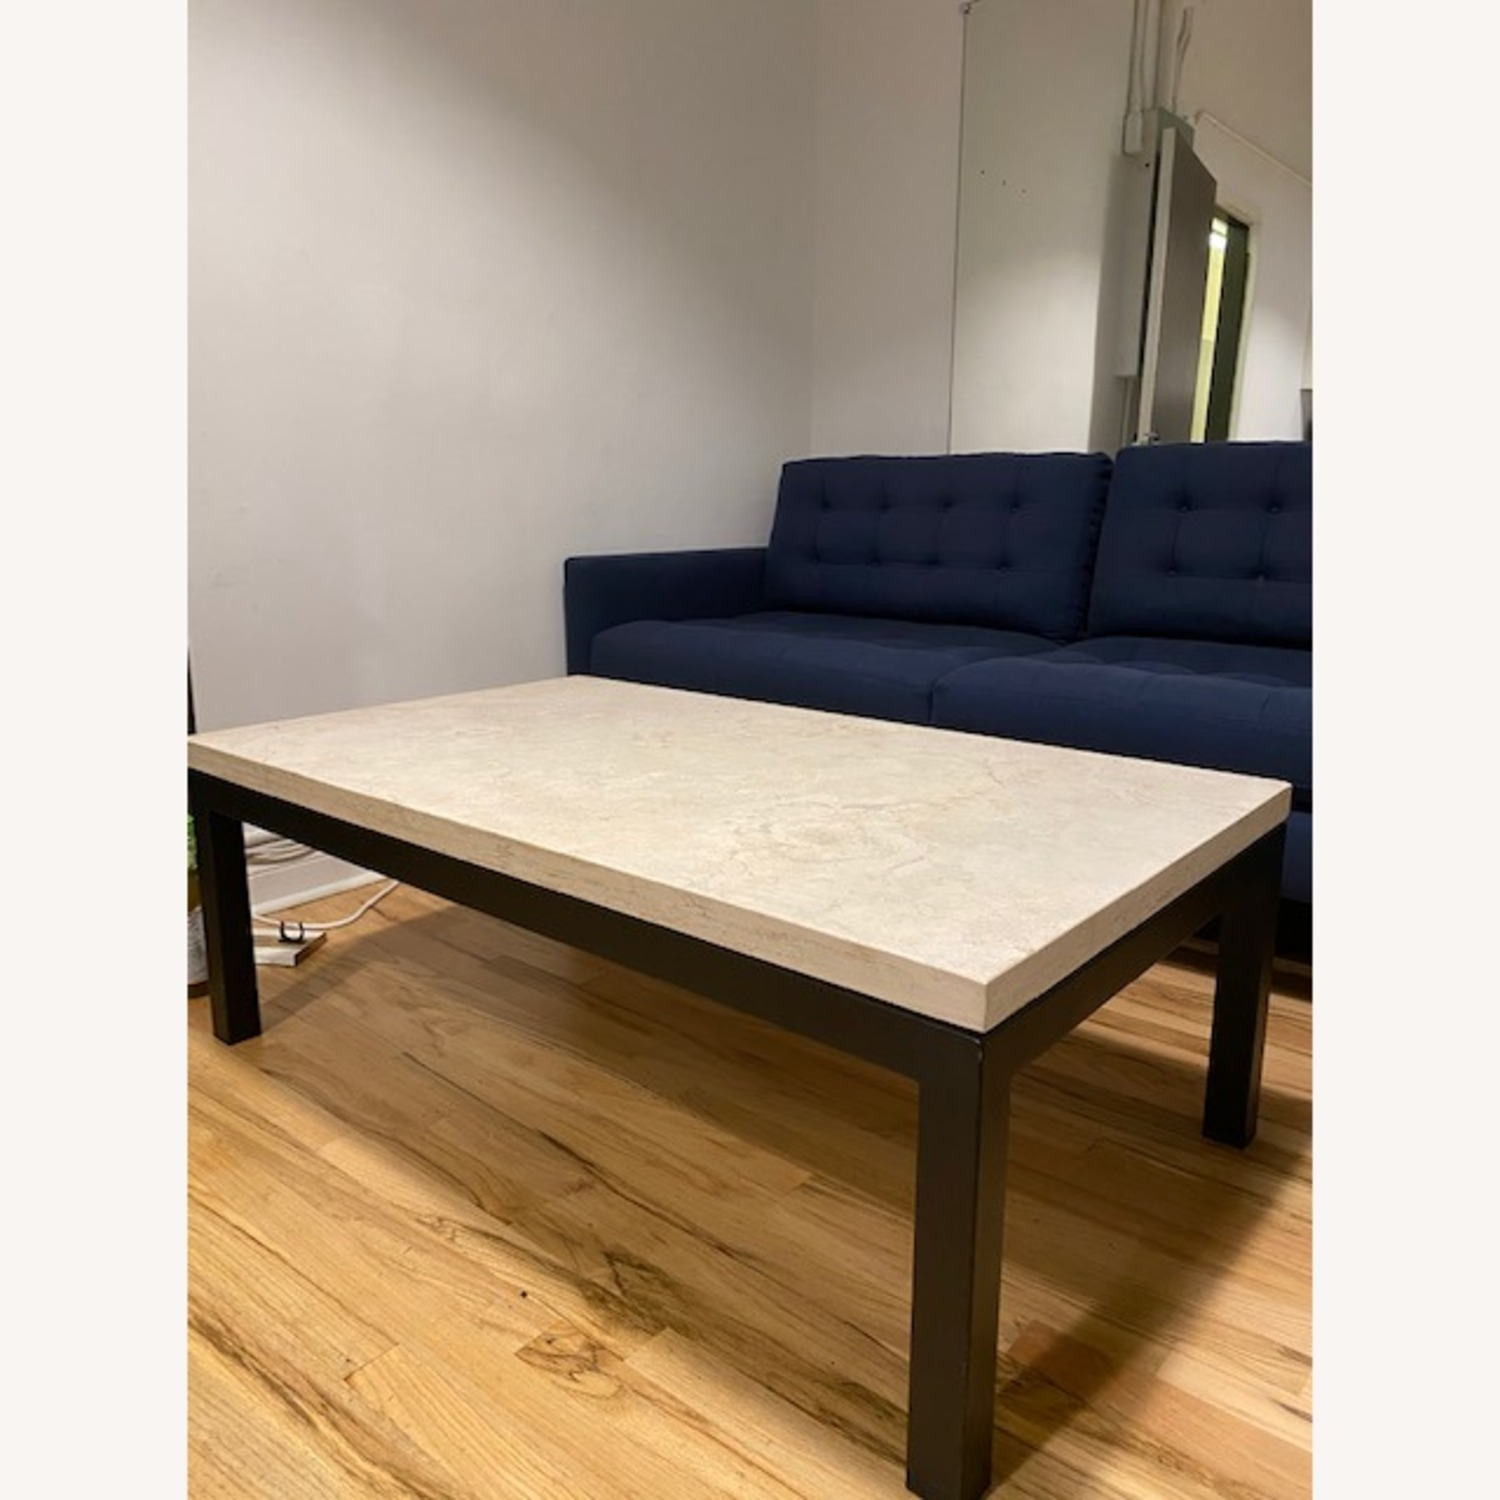 Crate & Barrel Marble Top Coffee Table - image-2